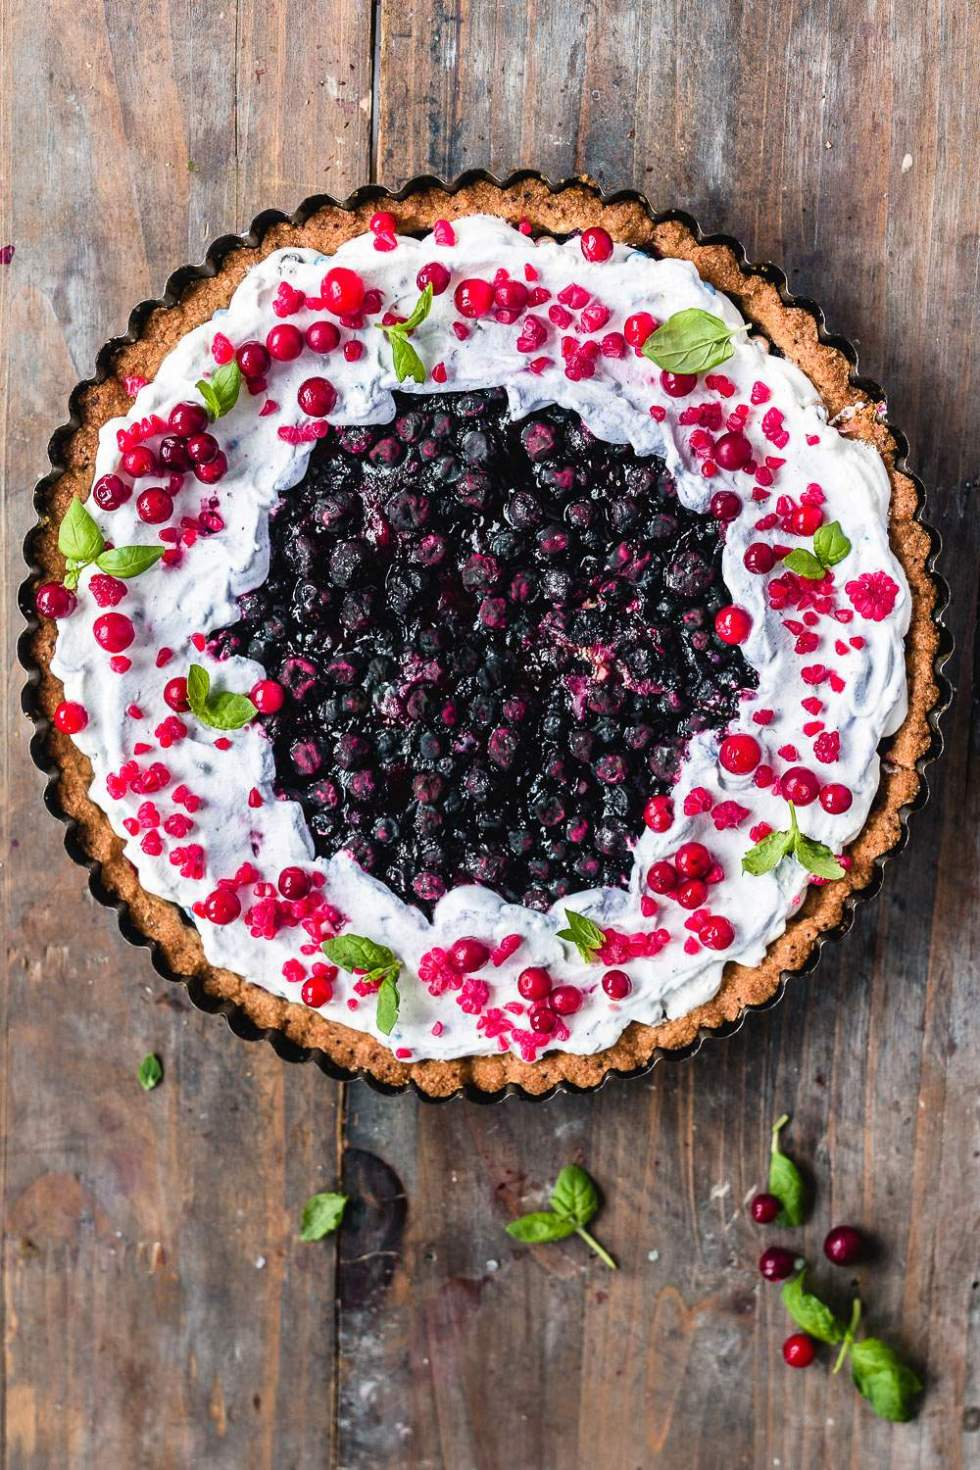 Gluten-free vegan blueberry cardamom pie